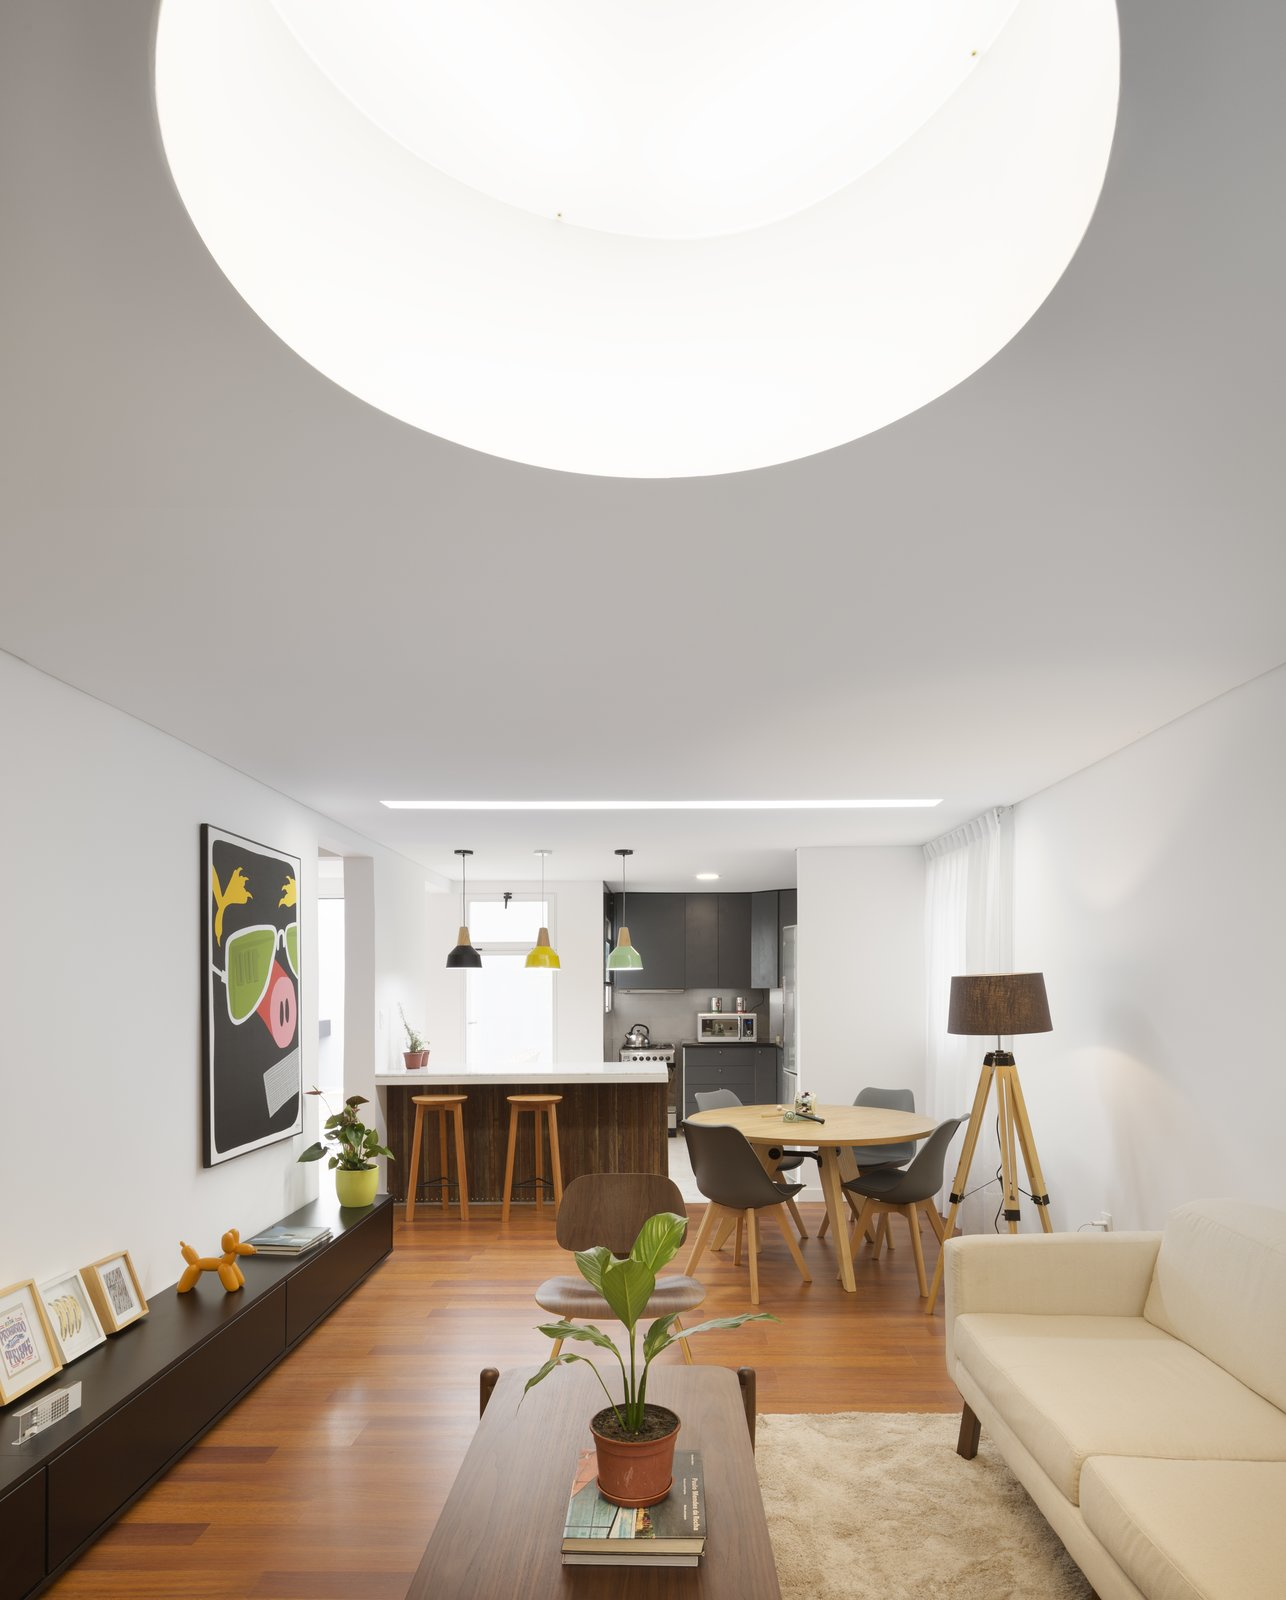 Living Room, Bench, Chair, Coffee Tables, Sofa, Console Tables, Ottomans, Pendant Lighting, Ceiling Lighting, and Medium Hardwood Floor Interior  Casa Plaza by mass arquitectos